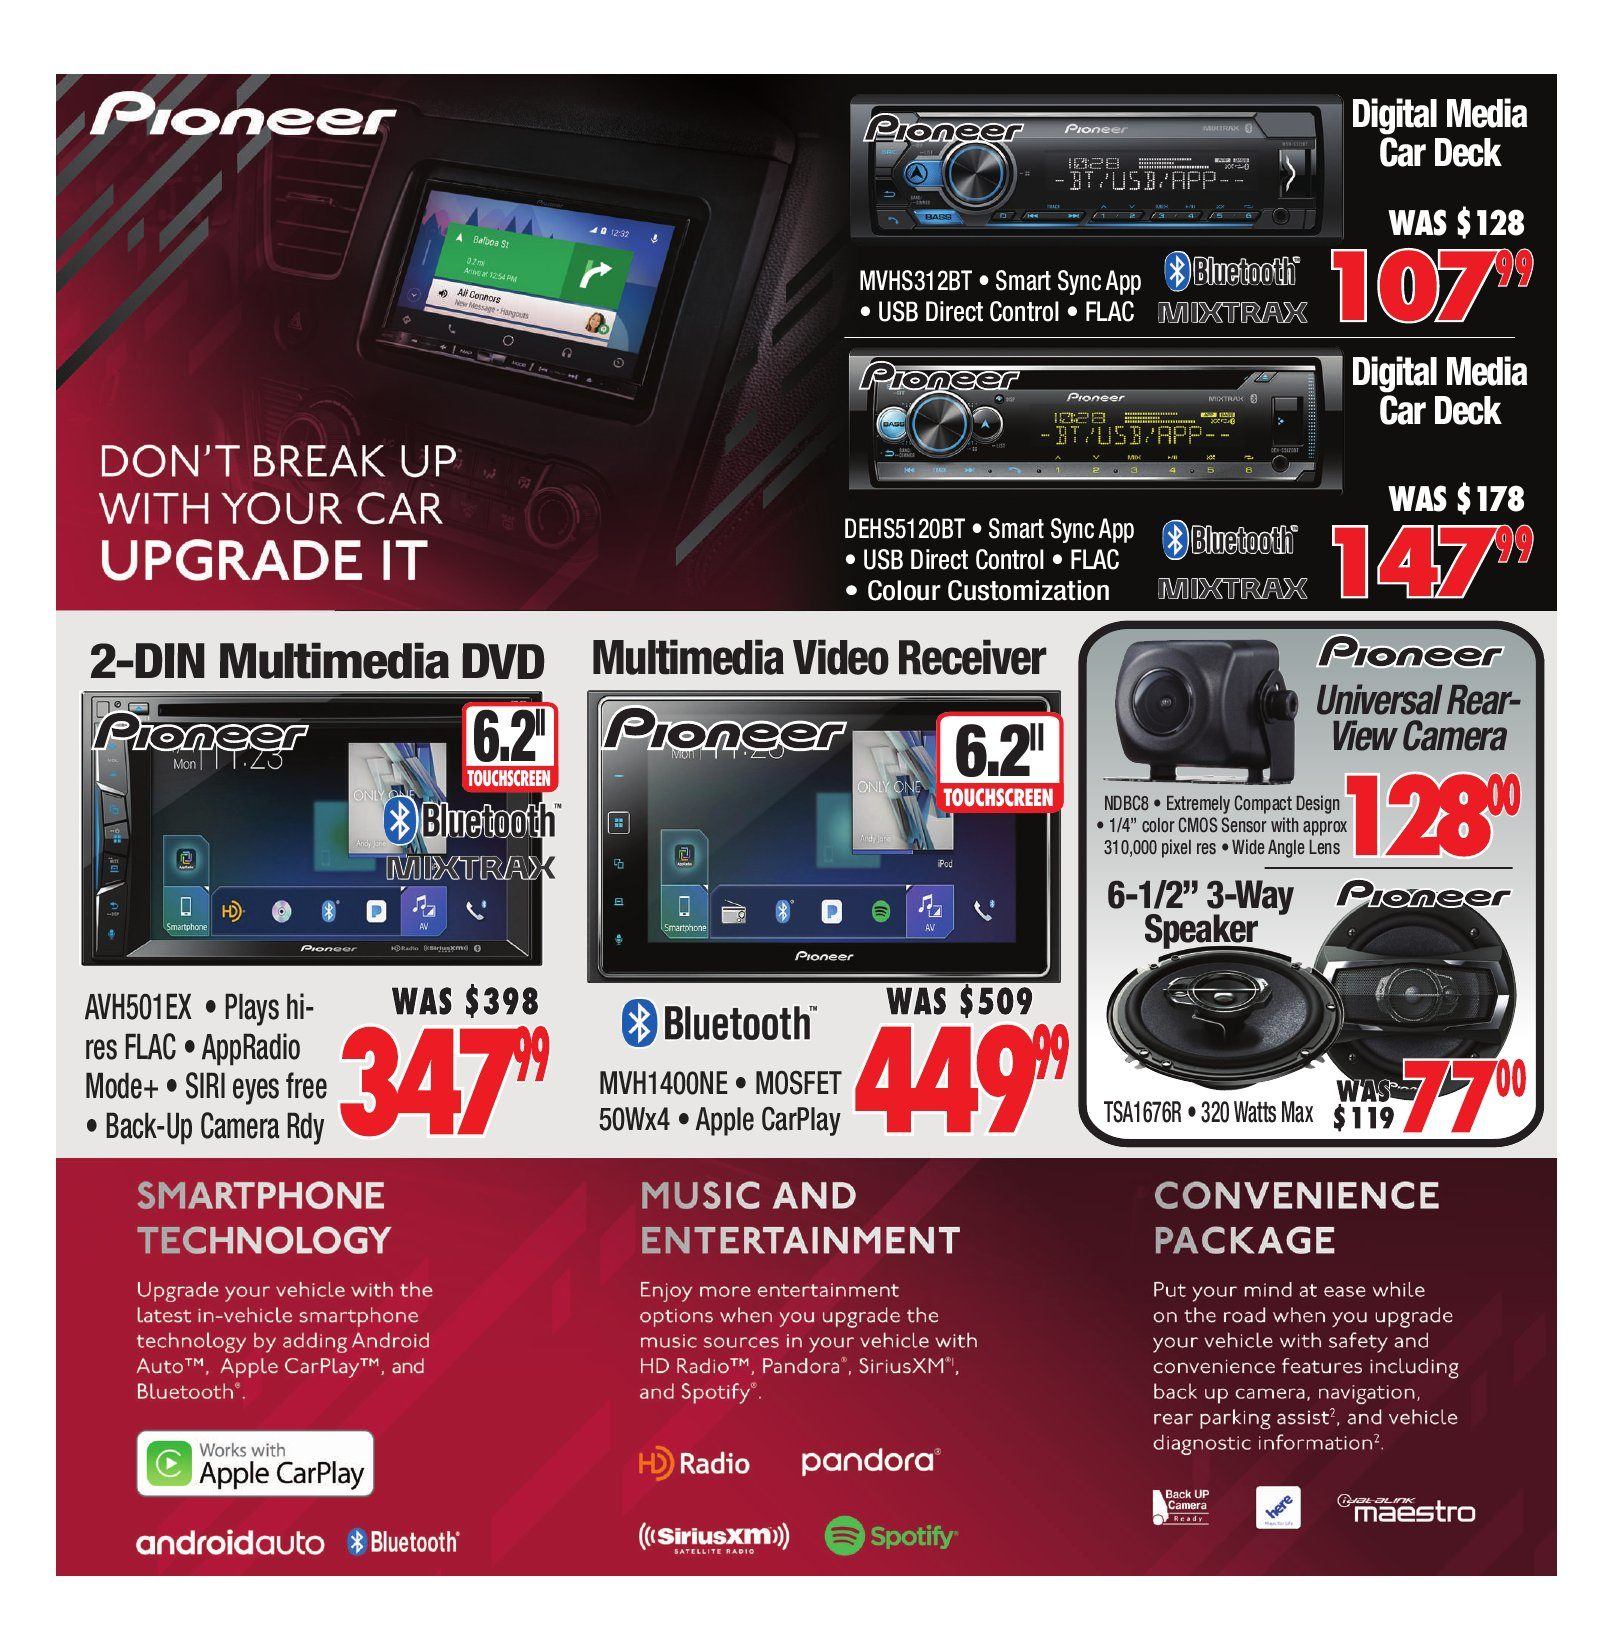 2001 Audio Video Weekly Flyer No Tax Event Nov 2 8 Pioneer Mosfet 50wx4 Power Ac Or Dc